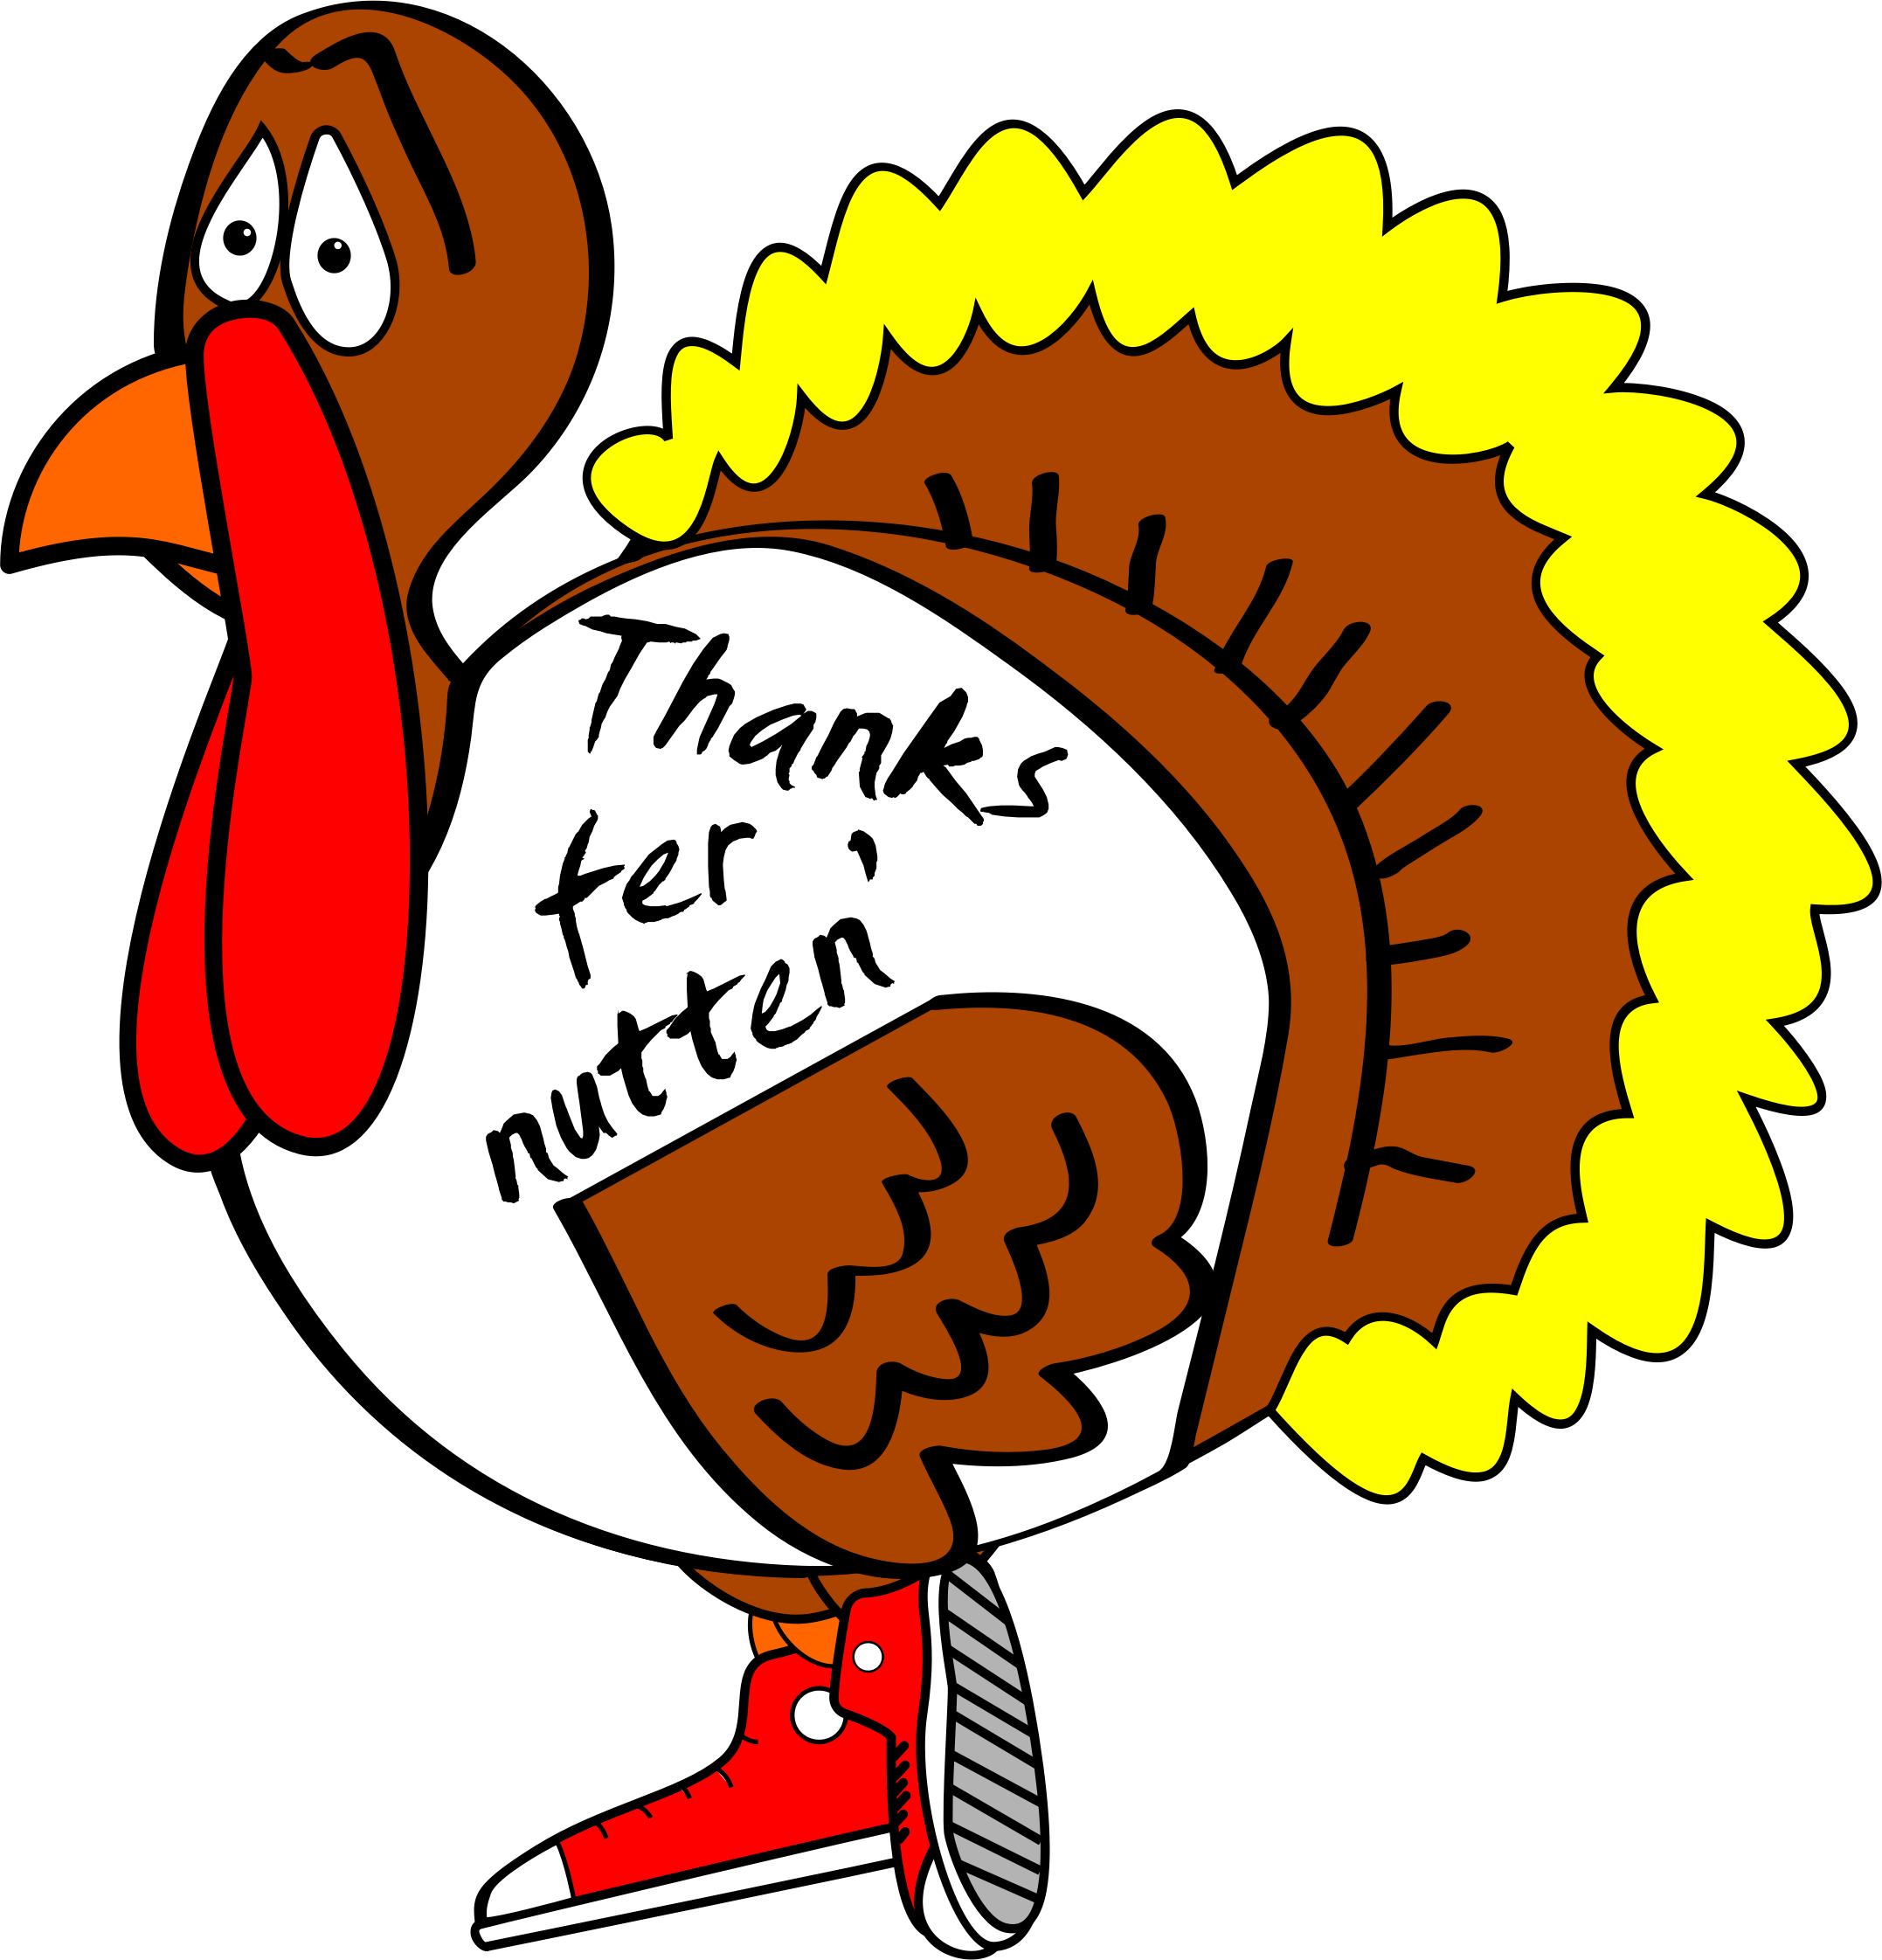 Free clipart turkey thanksgiving image free library Silly Turkey Clipart at GetDrawings.com | Free for personal use ... image free library